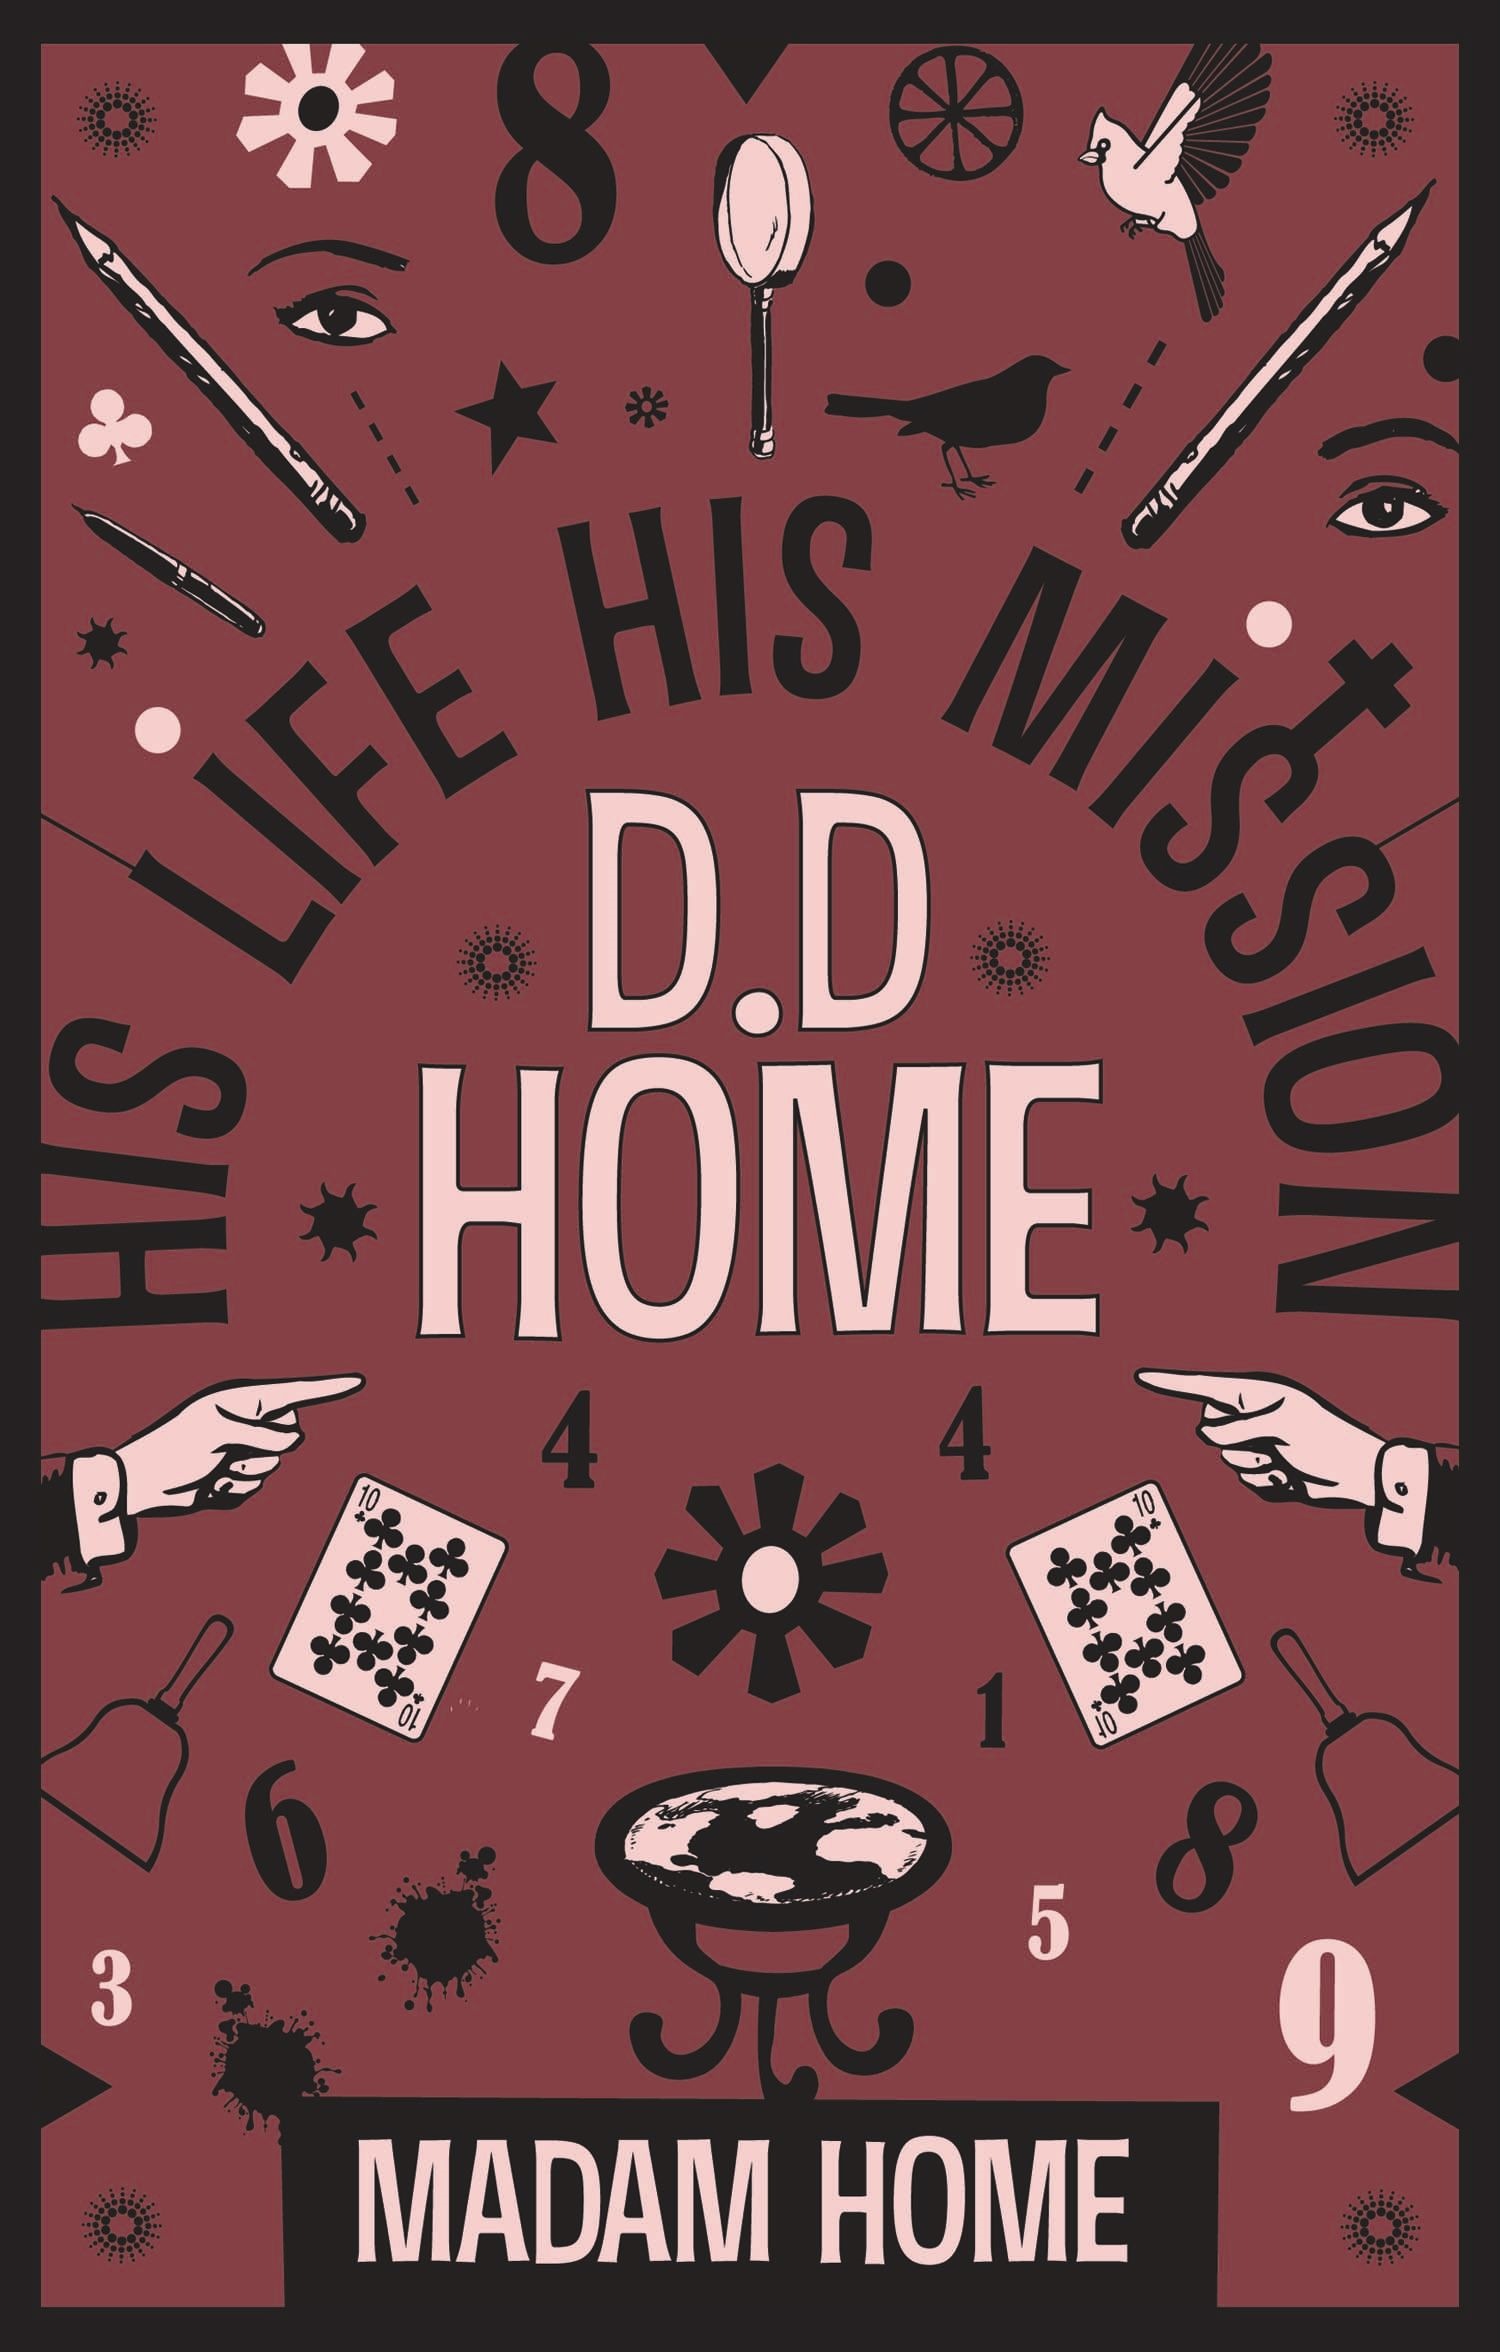 D. D. Home His Life His Mission By: Madam Home,Daniel Dunglas Home,Arthur Conan Doyle